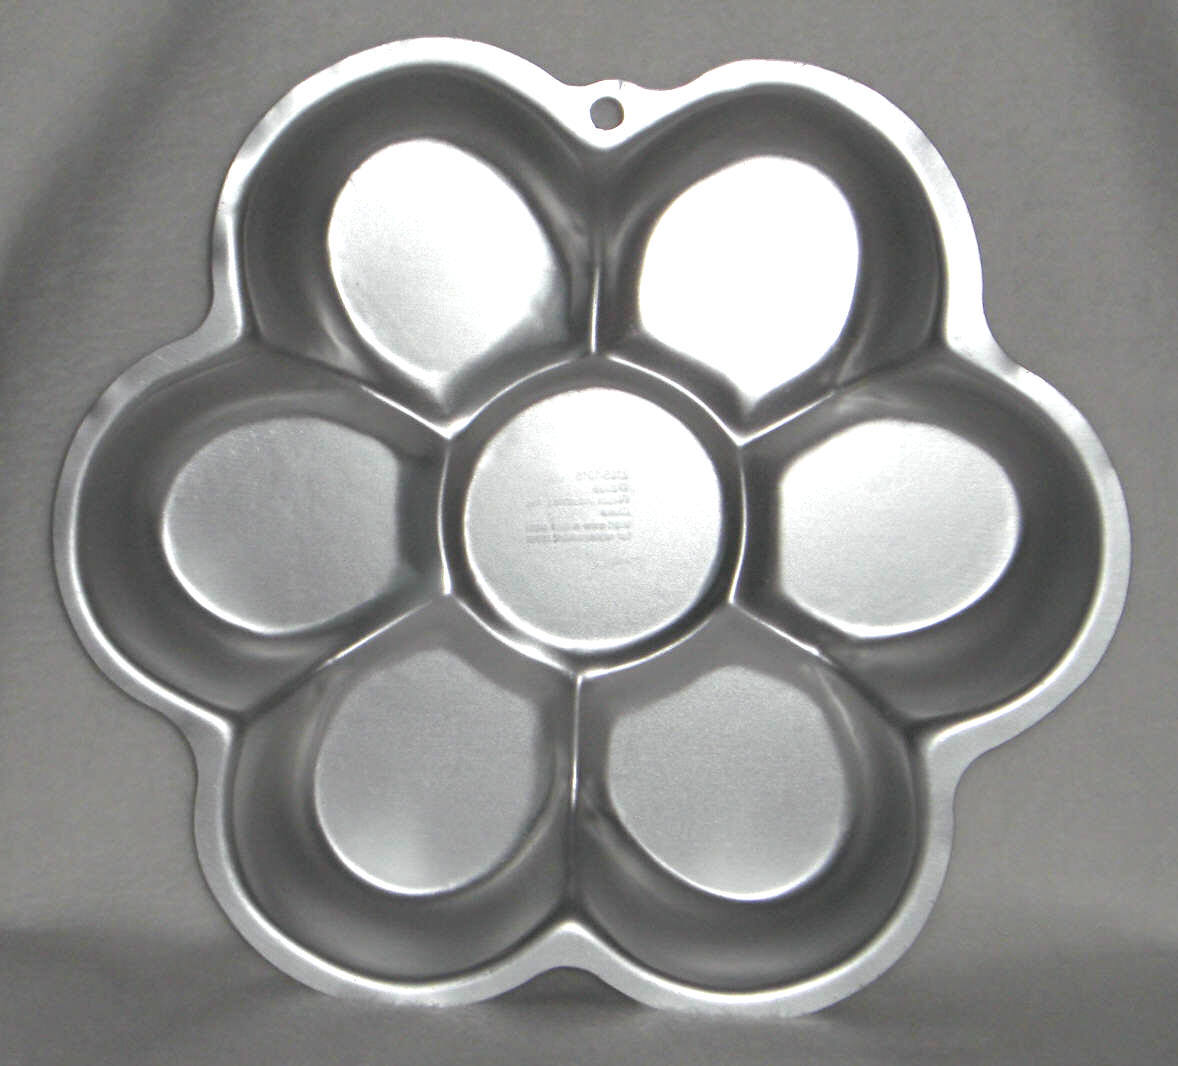 Primary image for Wilton Cake Pan DANCING DAISY 2105-1016 2006